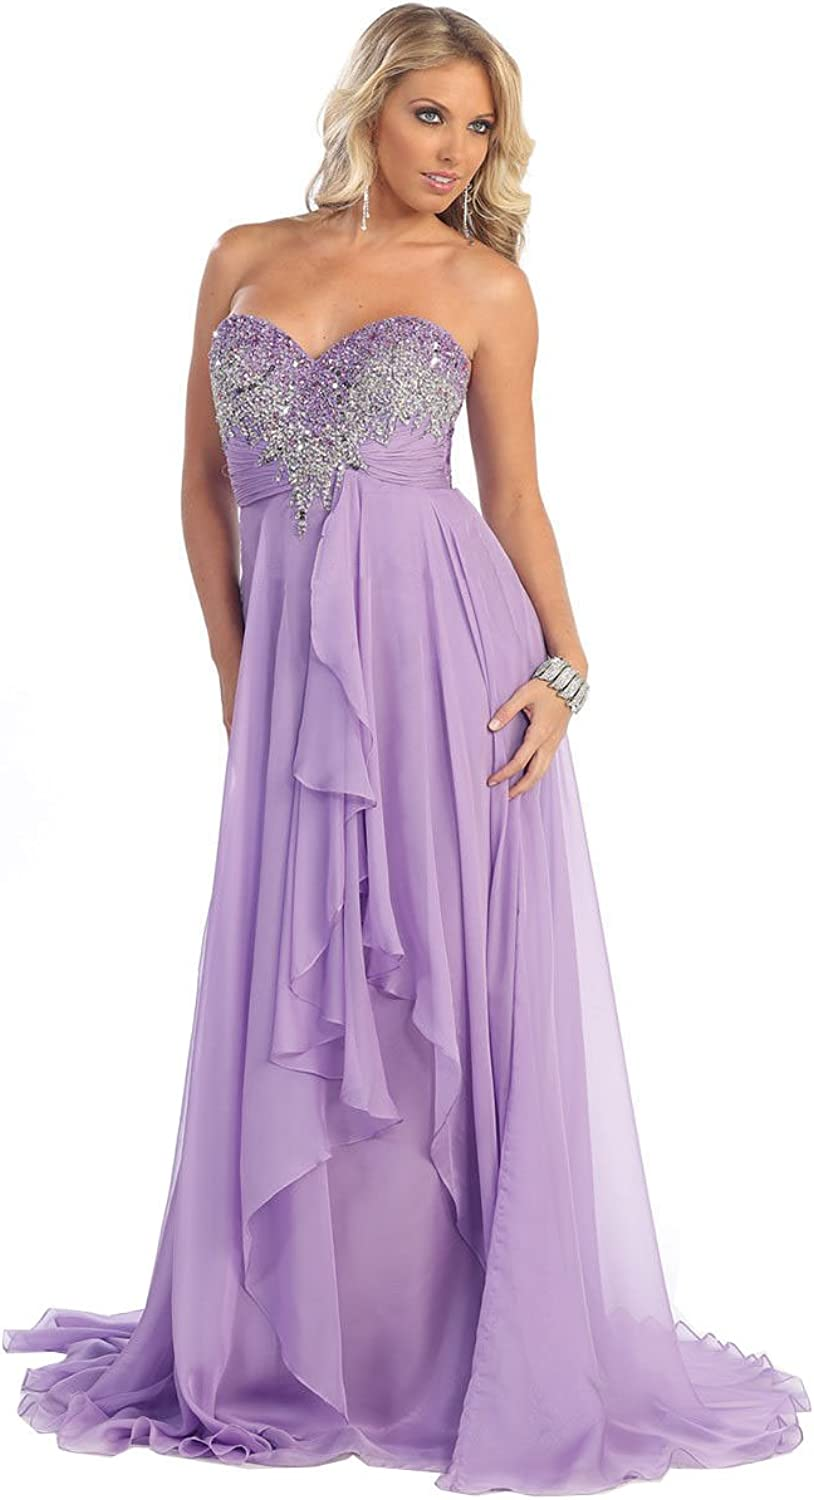 Royal Queen RQ7087 Special Occasion Strapless Dress